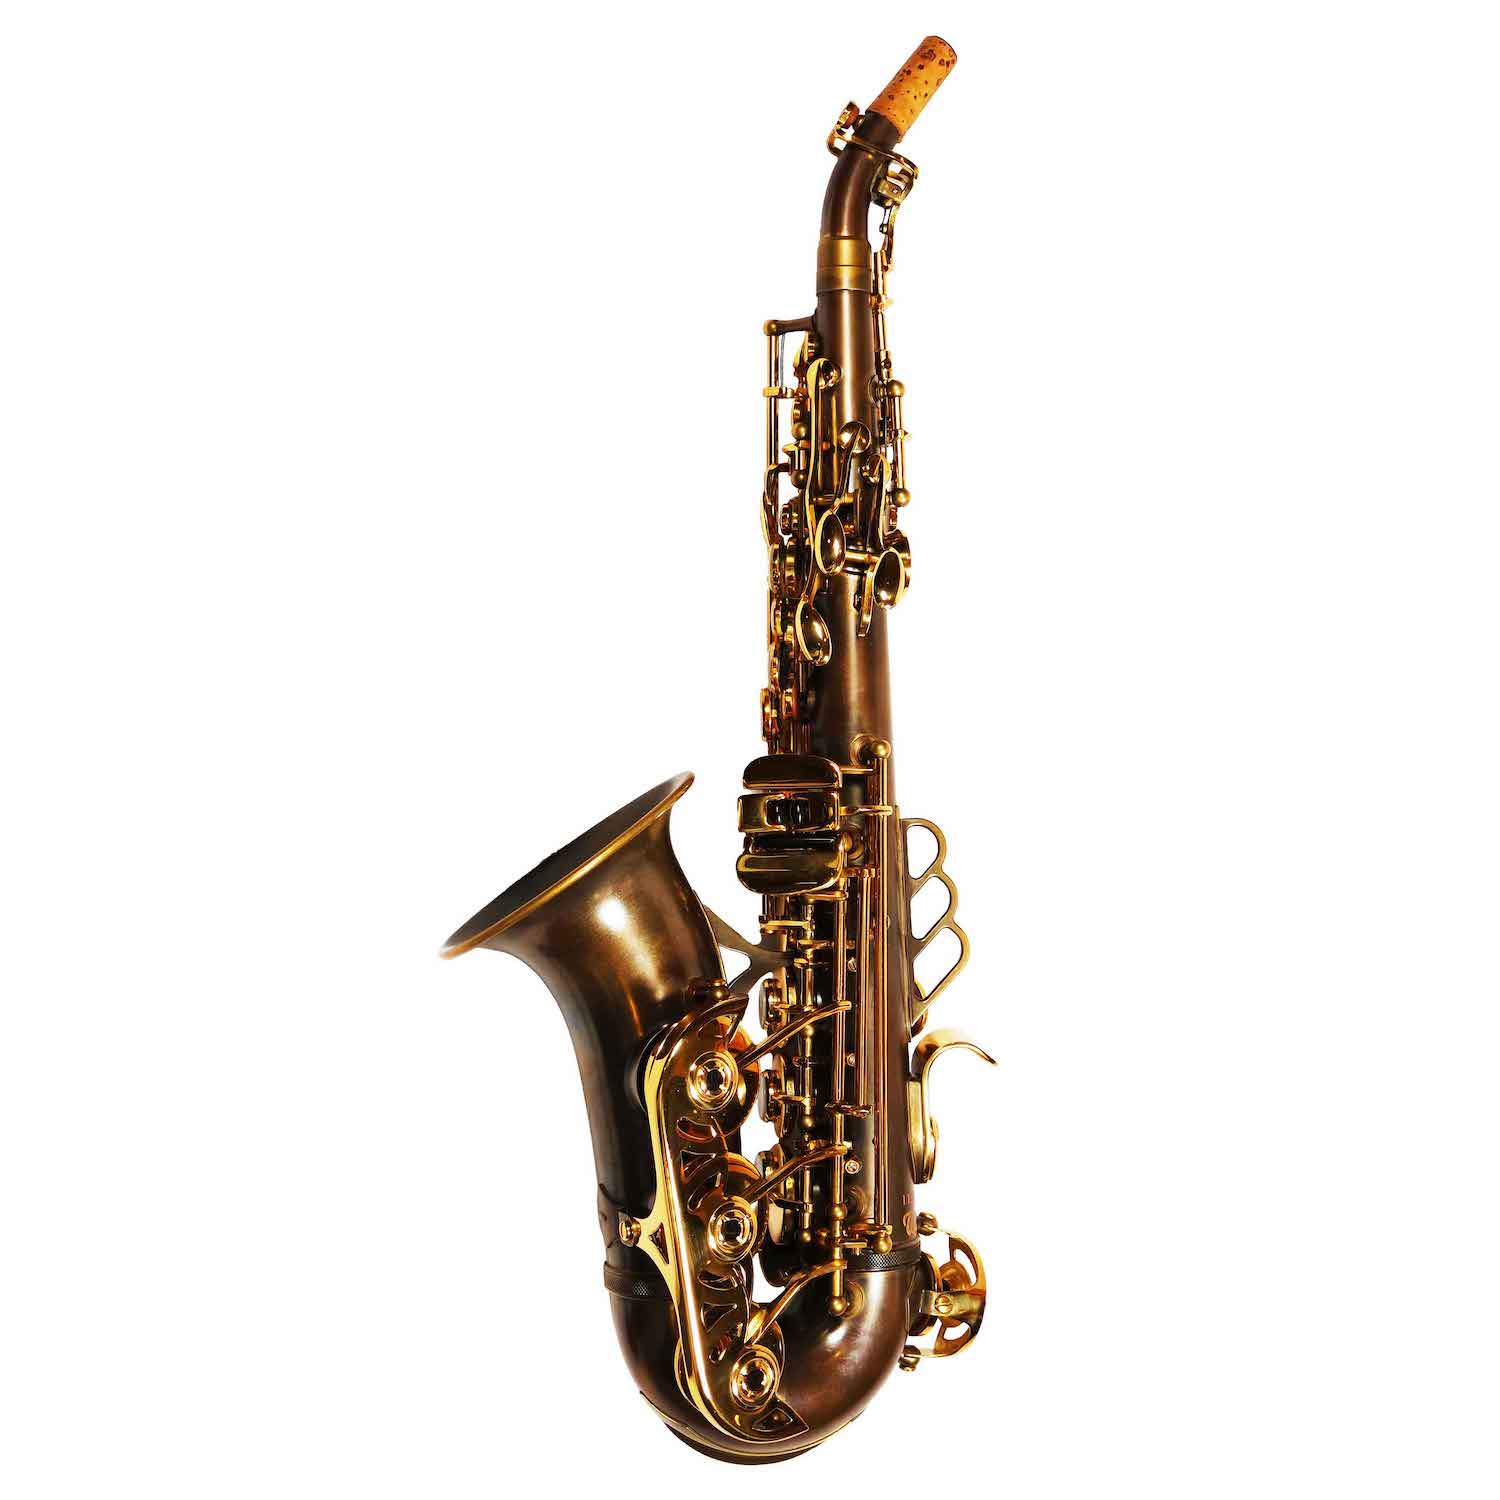 Theo Wanne MANTRA 2 Curved Soprano Saxophone